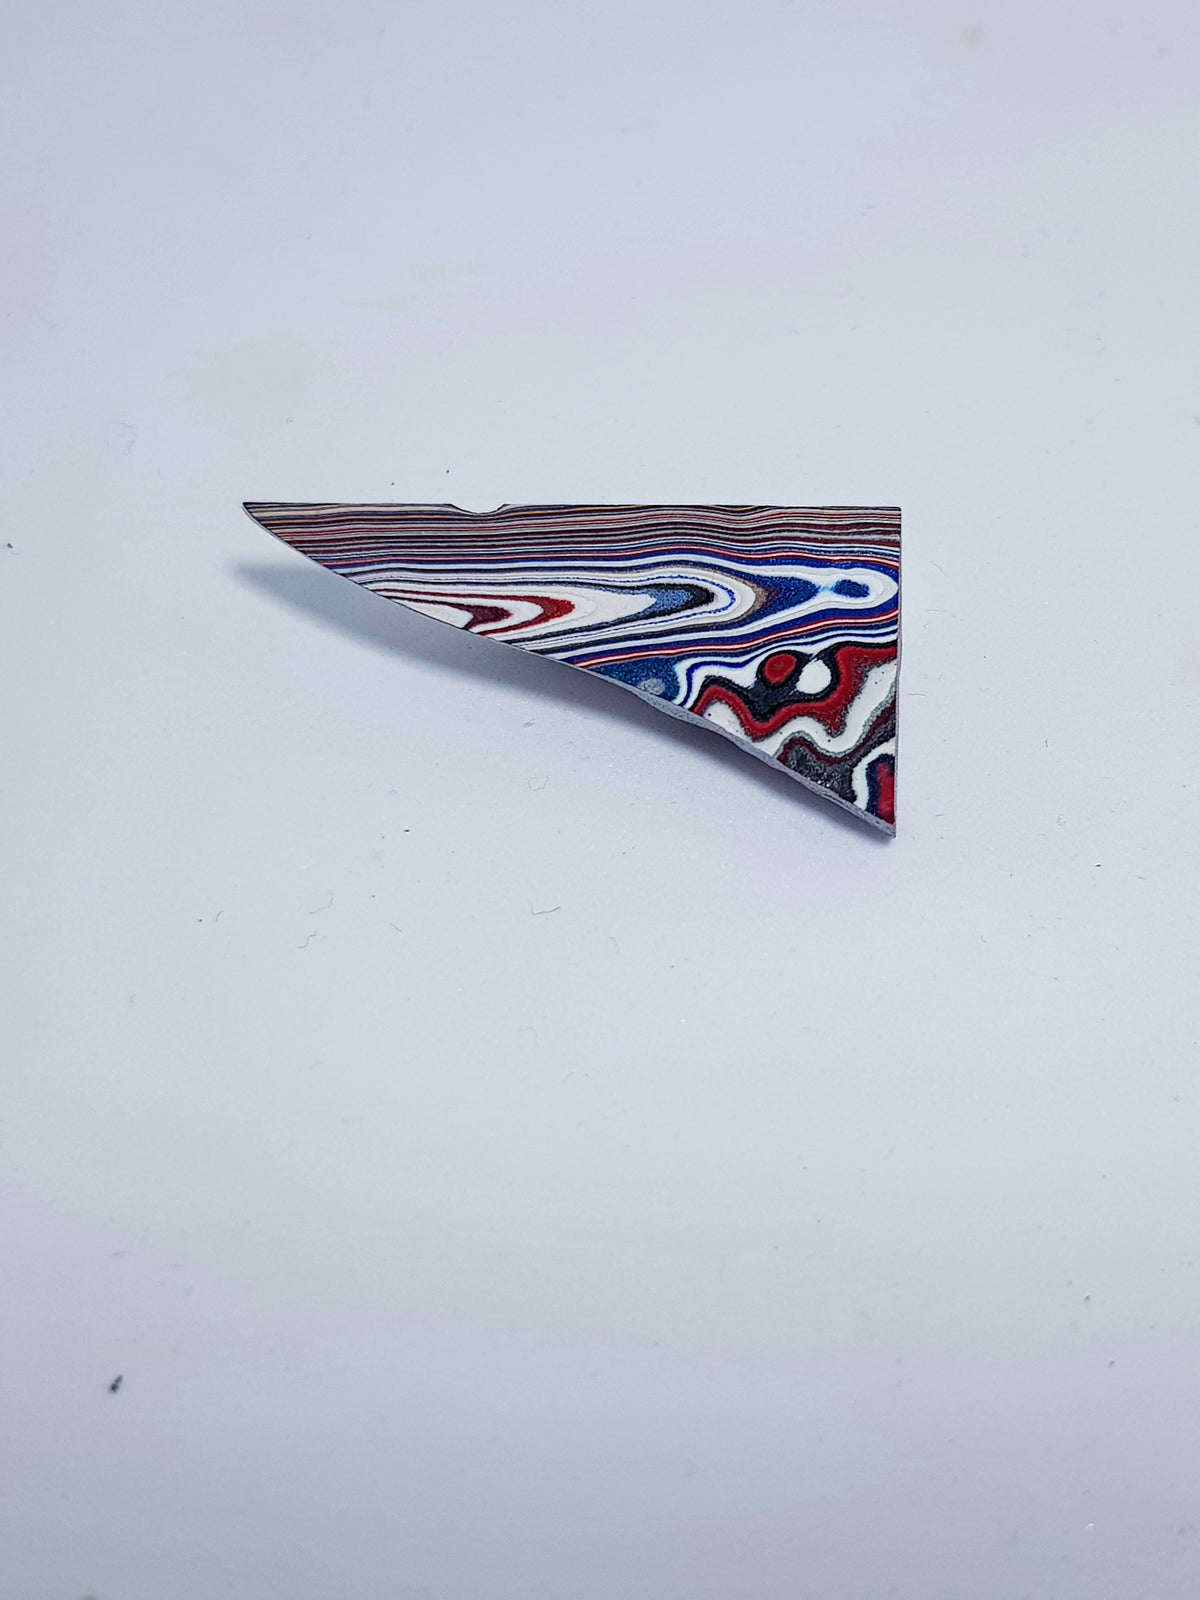 Small raw fordite - The Science of Magic